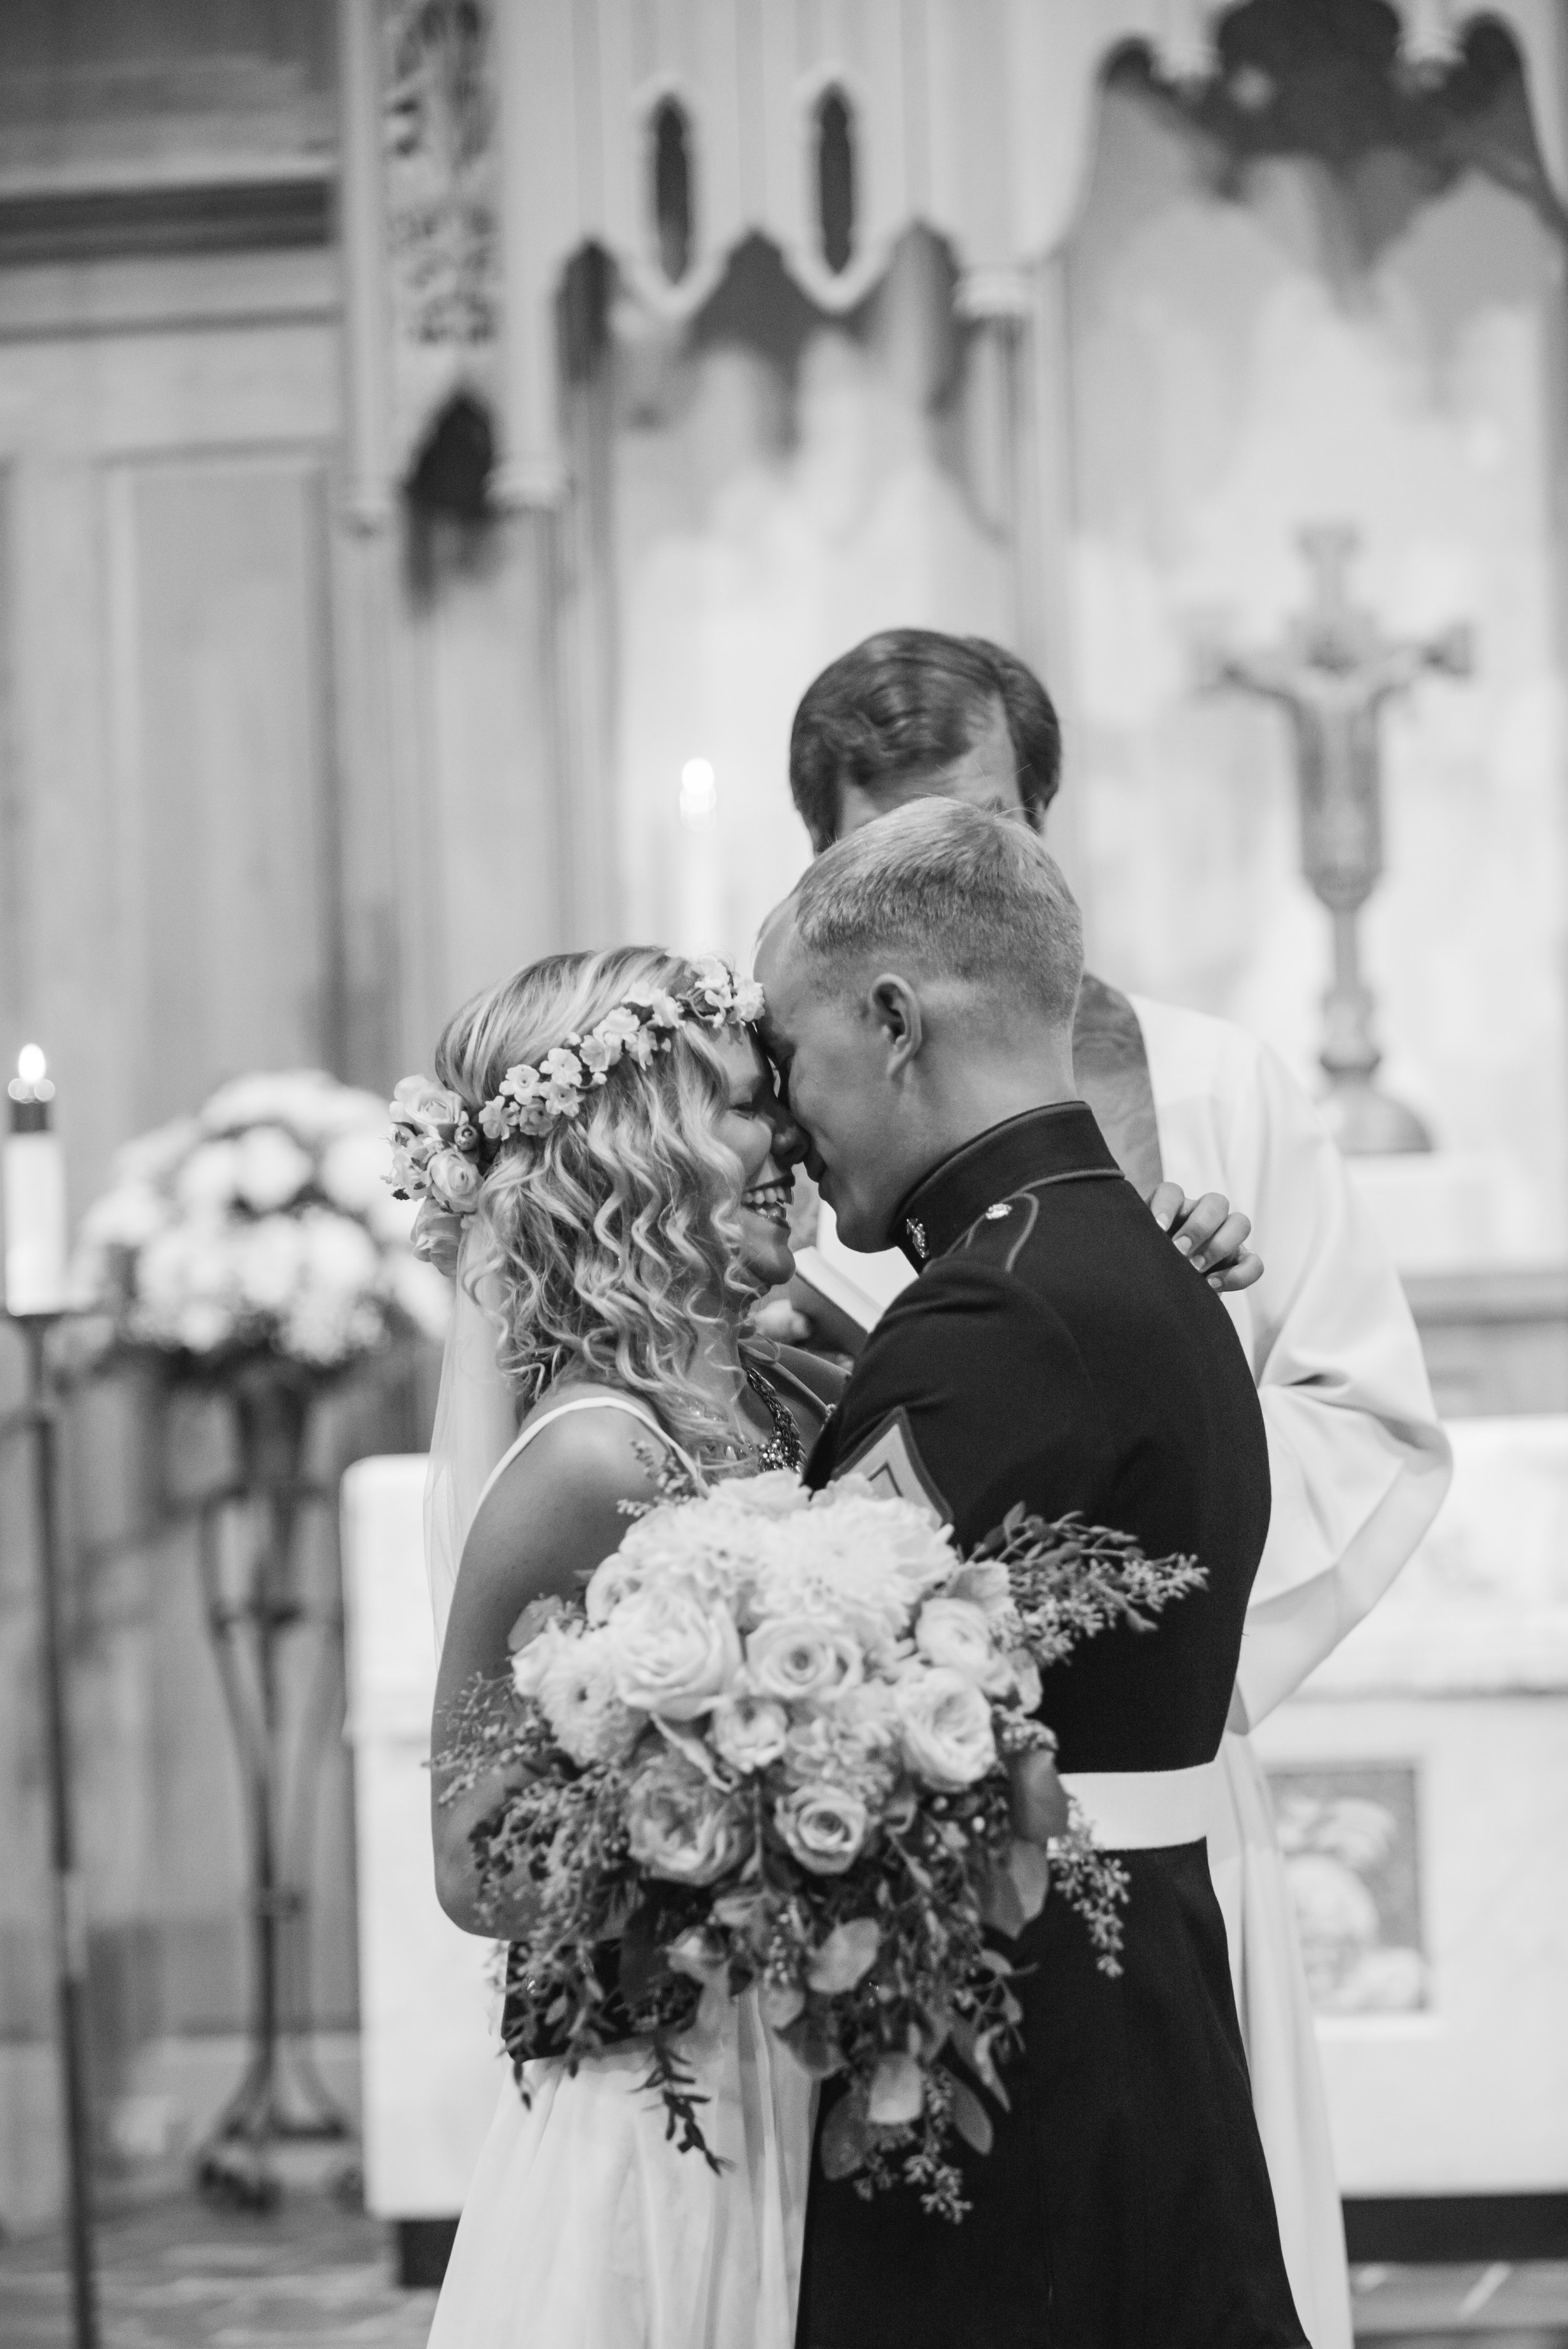 Traverse City Wedding Photography, Meridian Photography